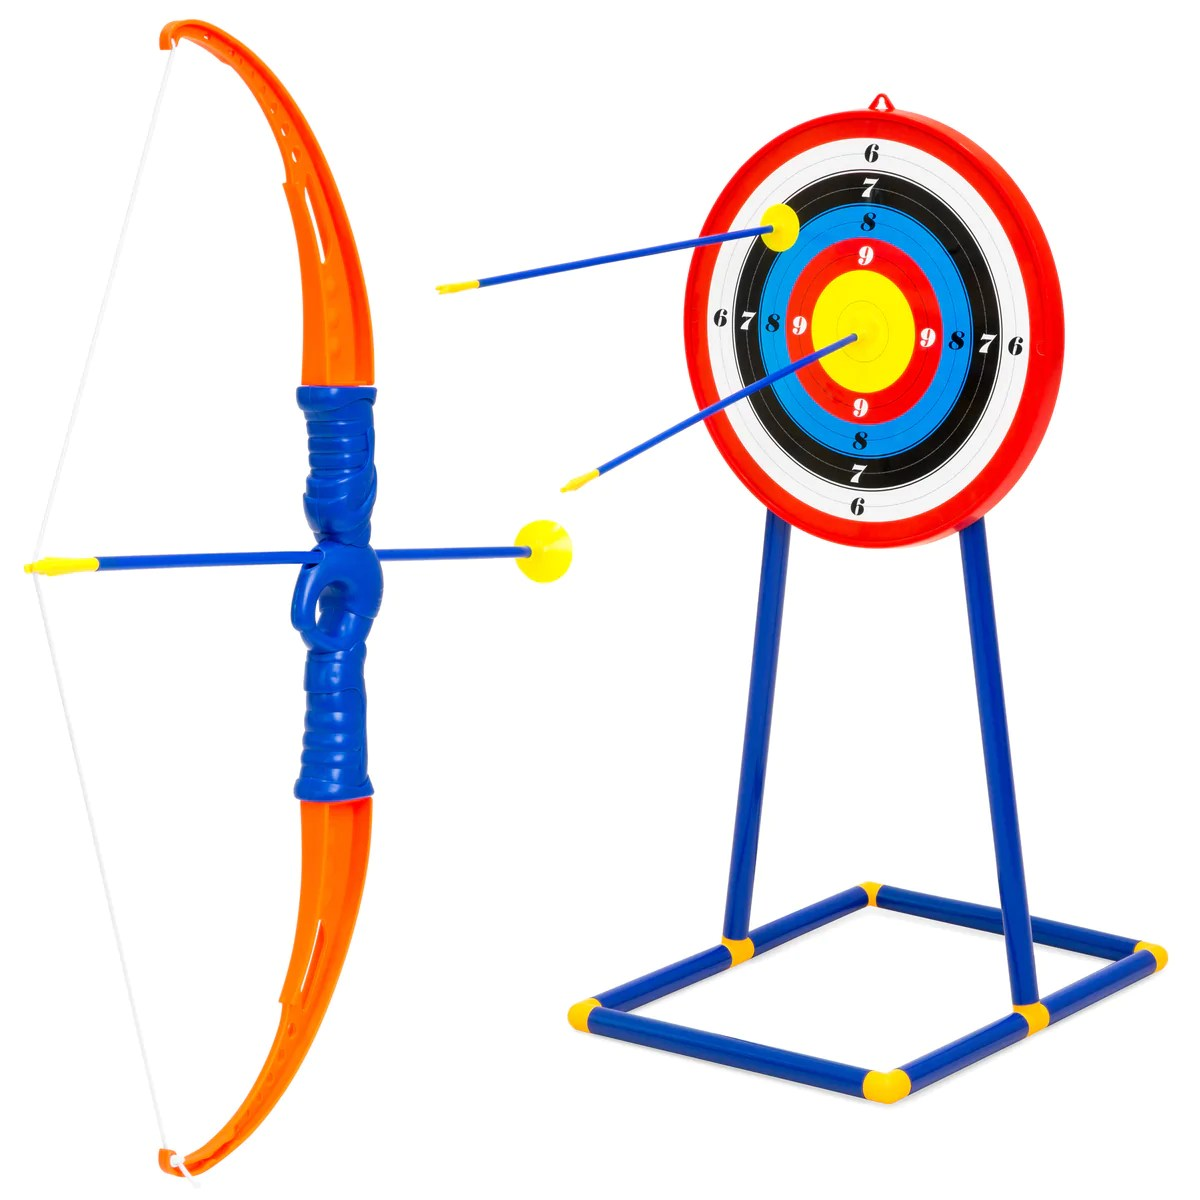 Toy Guitar Target Kids Archery Bow And Arrow Toy Play Set W 3 Suction Cup Arrows Target Multicolor